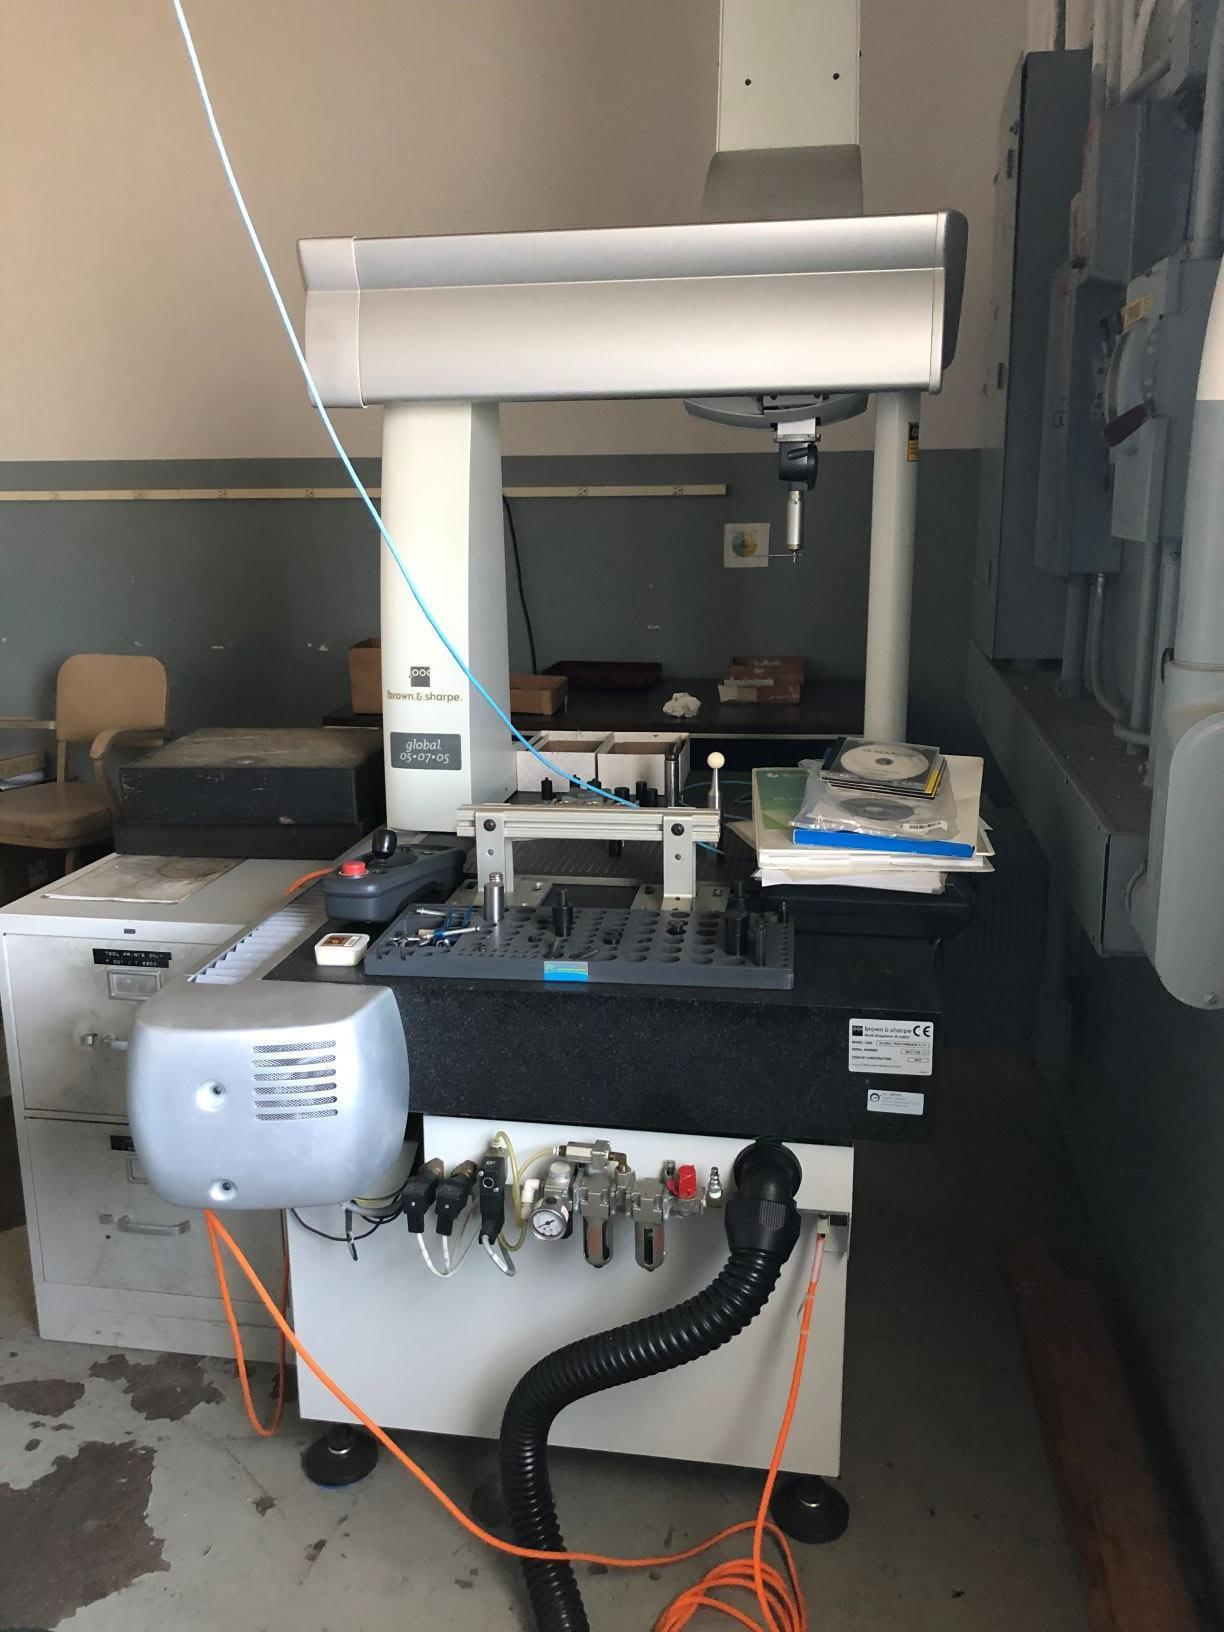 Brown & Sharpe Global Performance 5/7/5 Coordinate Measuring Machine (CMM)